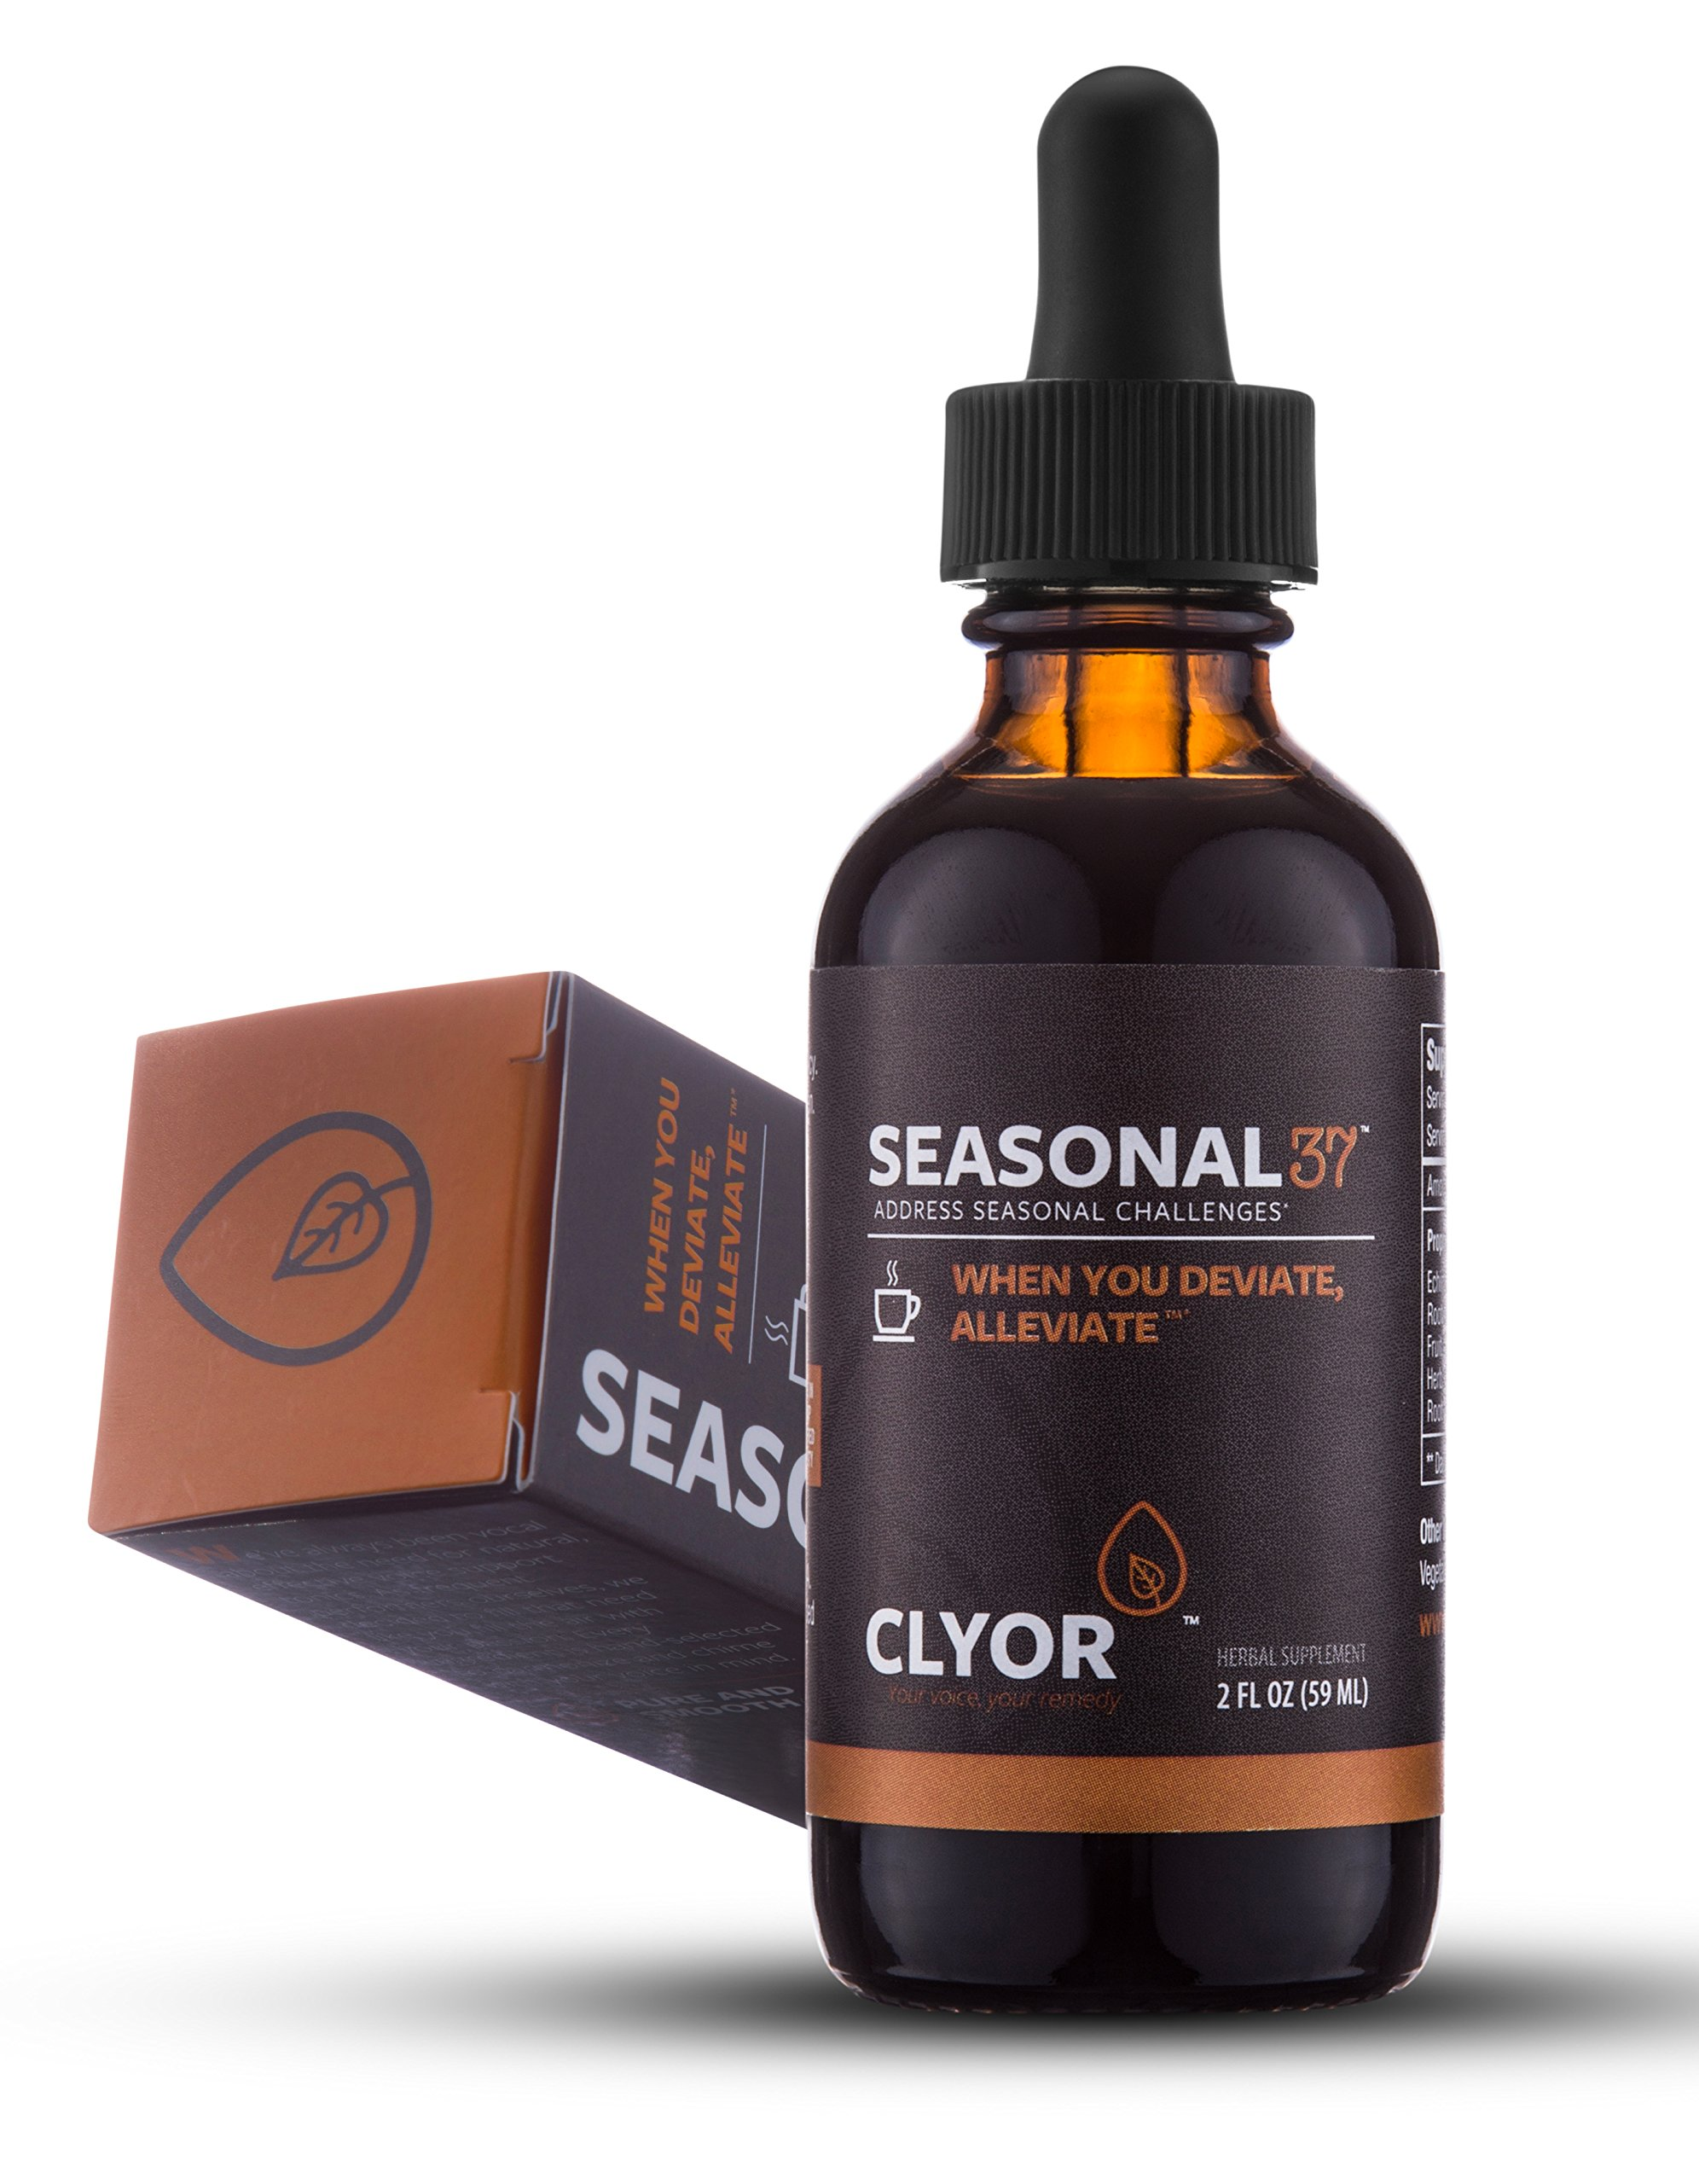 Seasonal37 - Cold Remedy - Fast Acting Cold Relief - All Natural Herbal Immune Booster Cold Flu Cough Respiratory Congestion, Elderberry, Ginger & Echinacea Herb 2oz - SEASONAL37 by Clyor by CLYOR